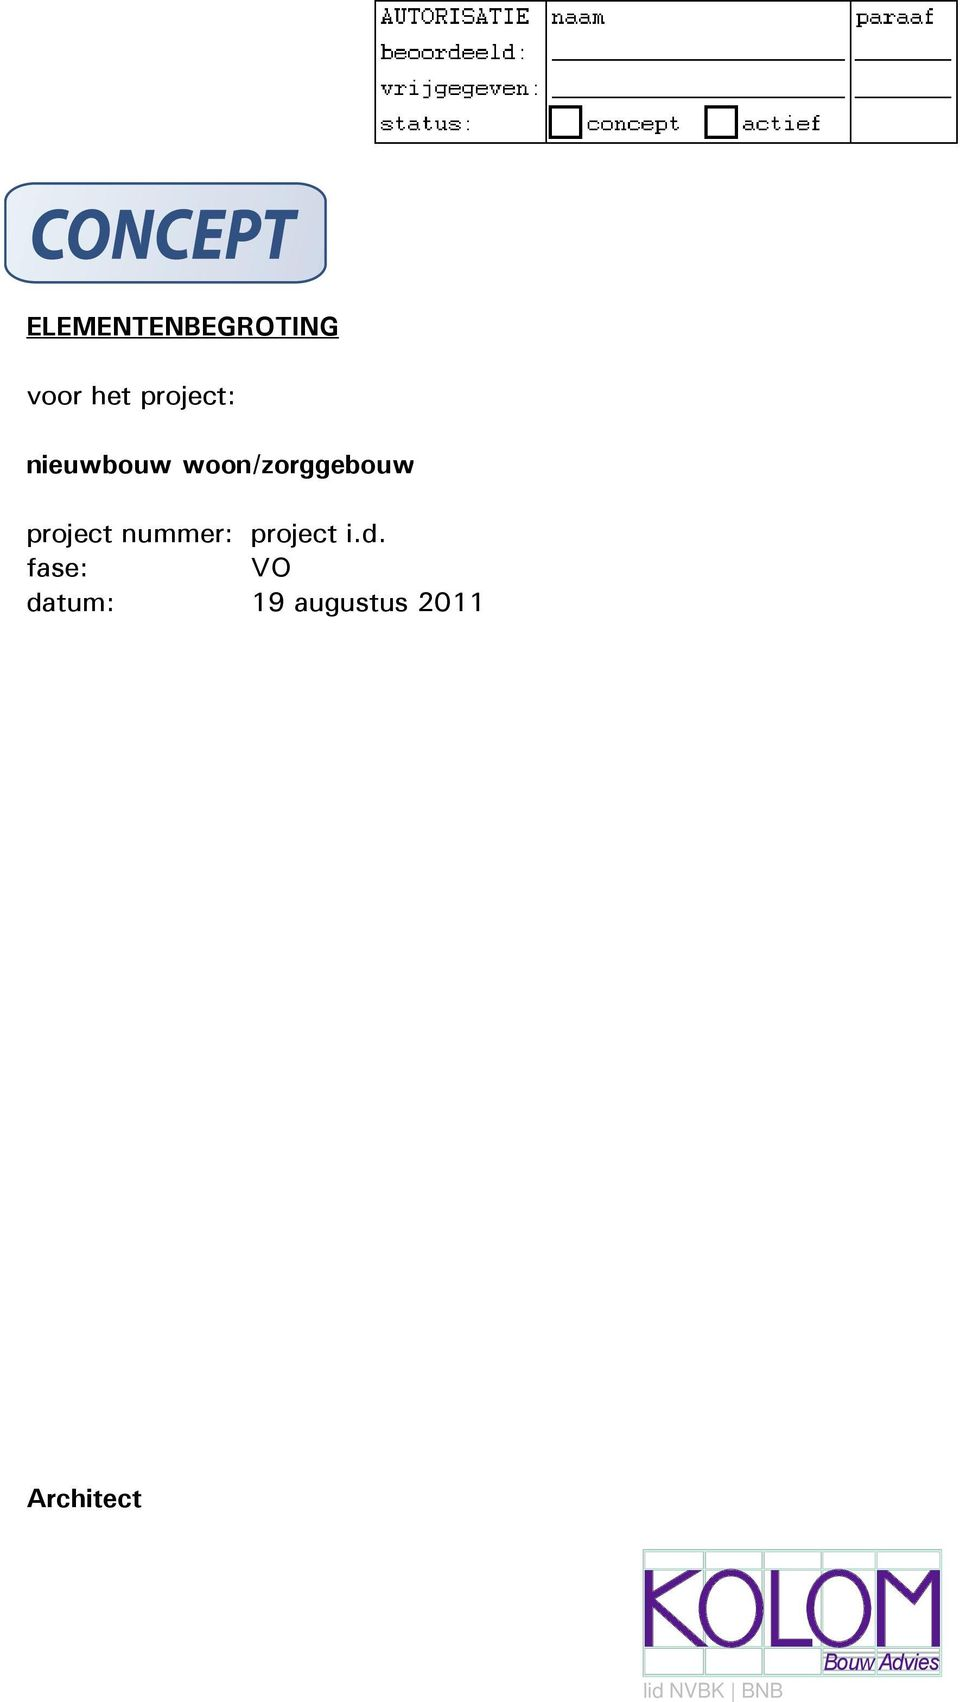 nummer: project i.d.